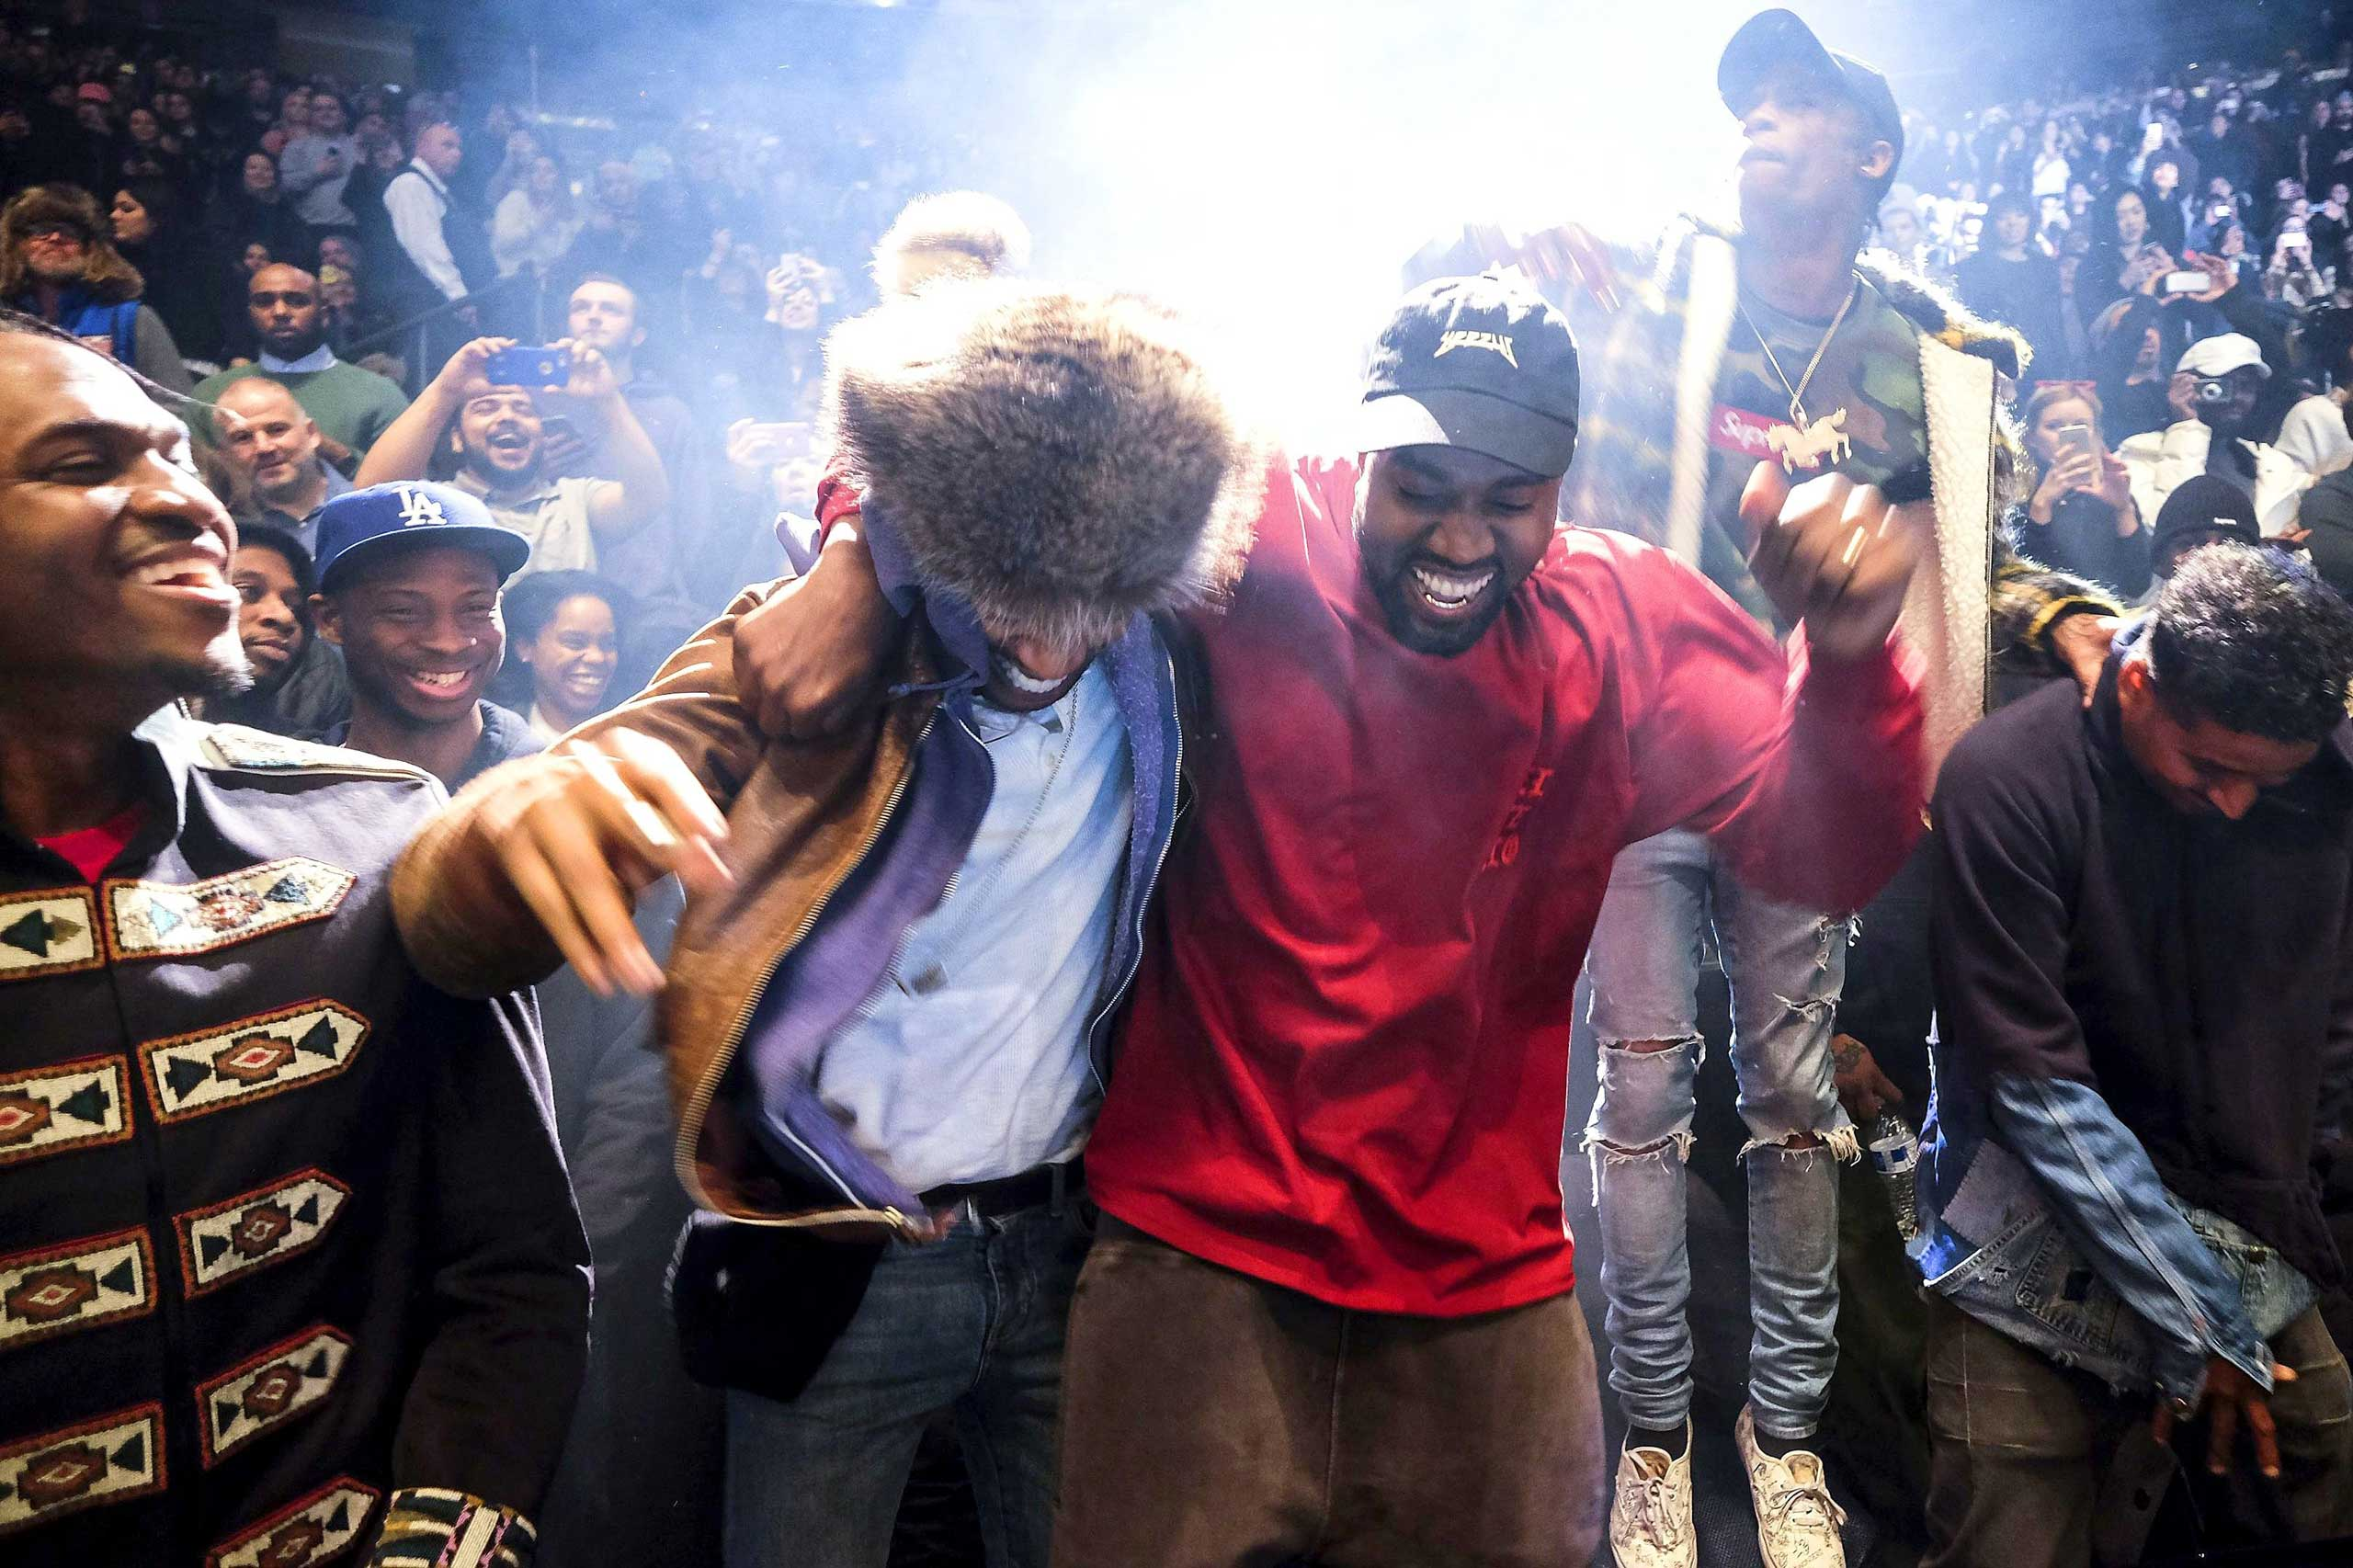 Pusha T, Steven Victor, Kid Cudi, Kanye West, Travis Scott and Don C                               at West's Yeezy Season 3 fashion show at Madison Square Garden, Feb. 11, 2016.